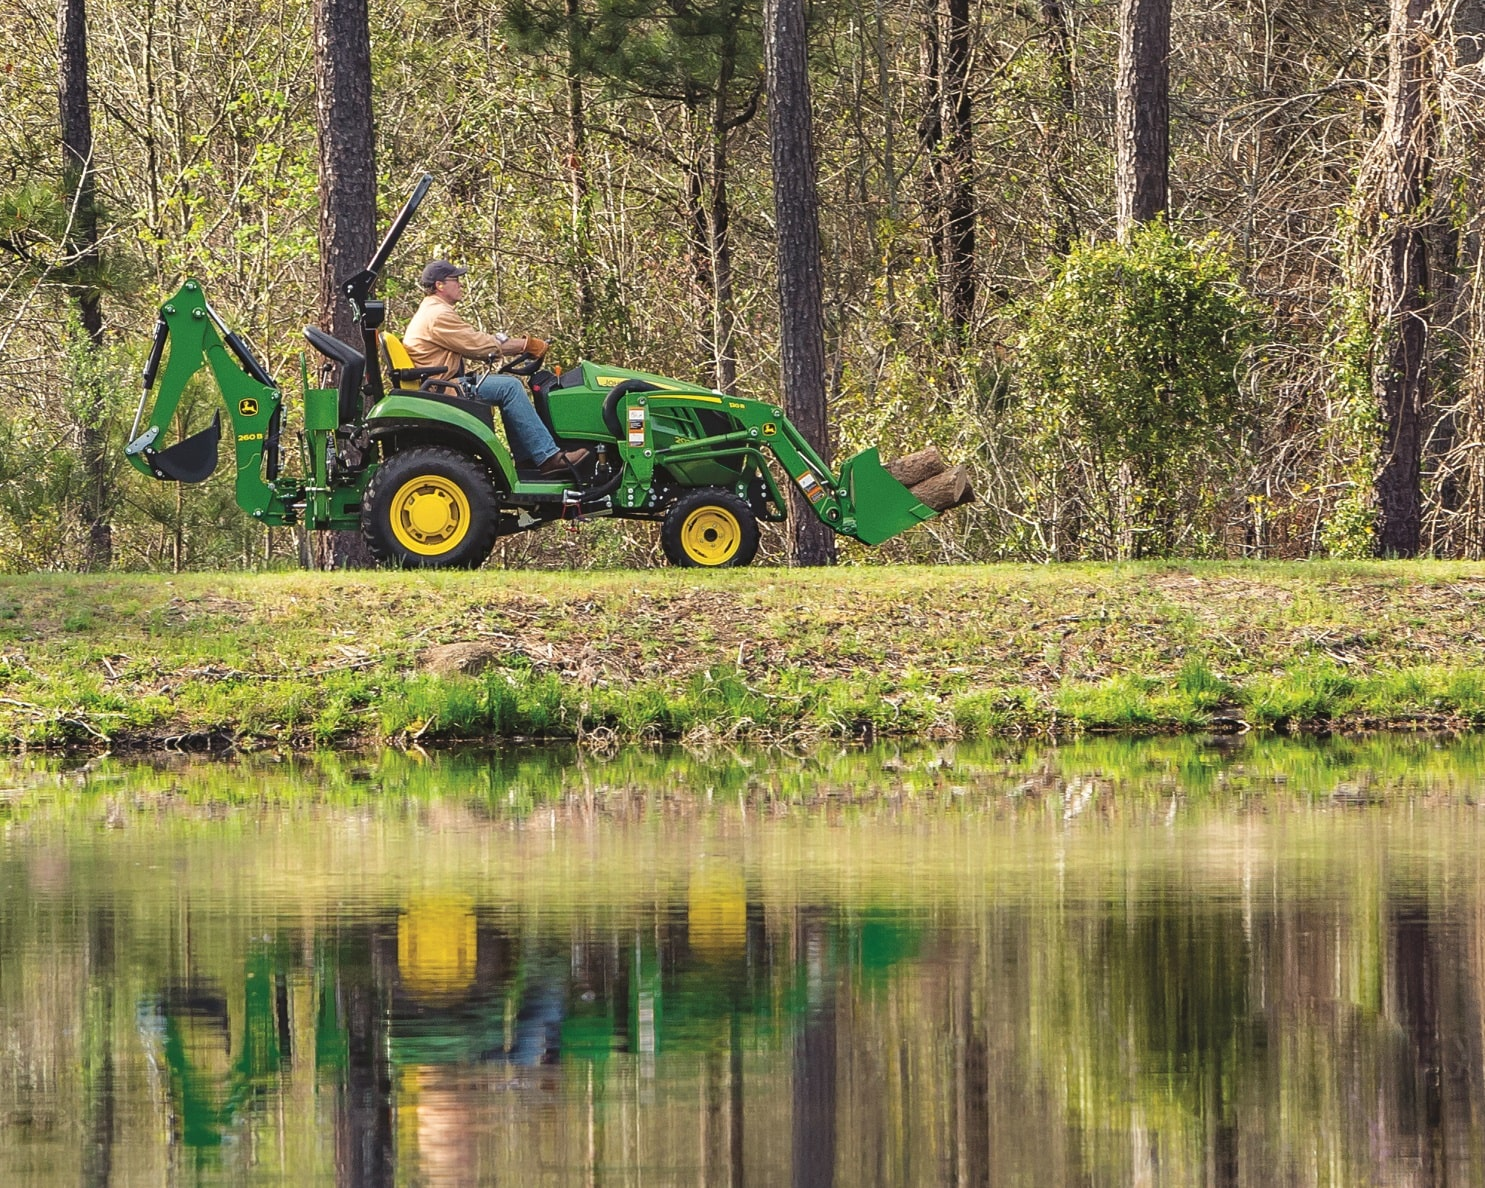 2025_Compact_John_Deere_Swamp_Implements